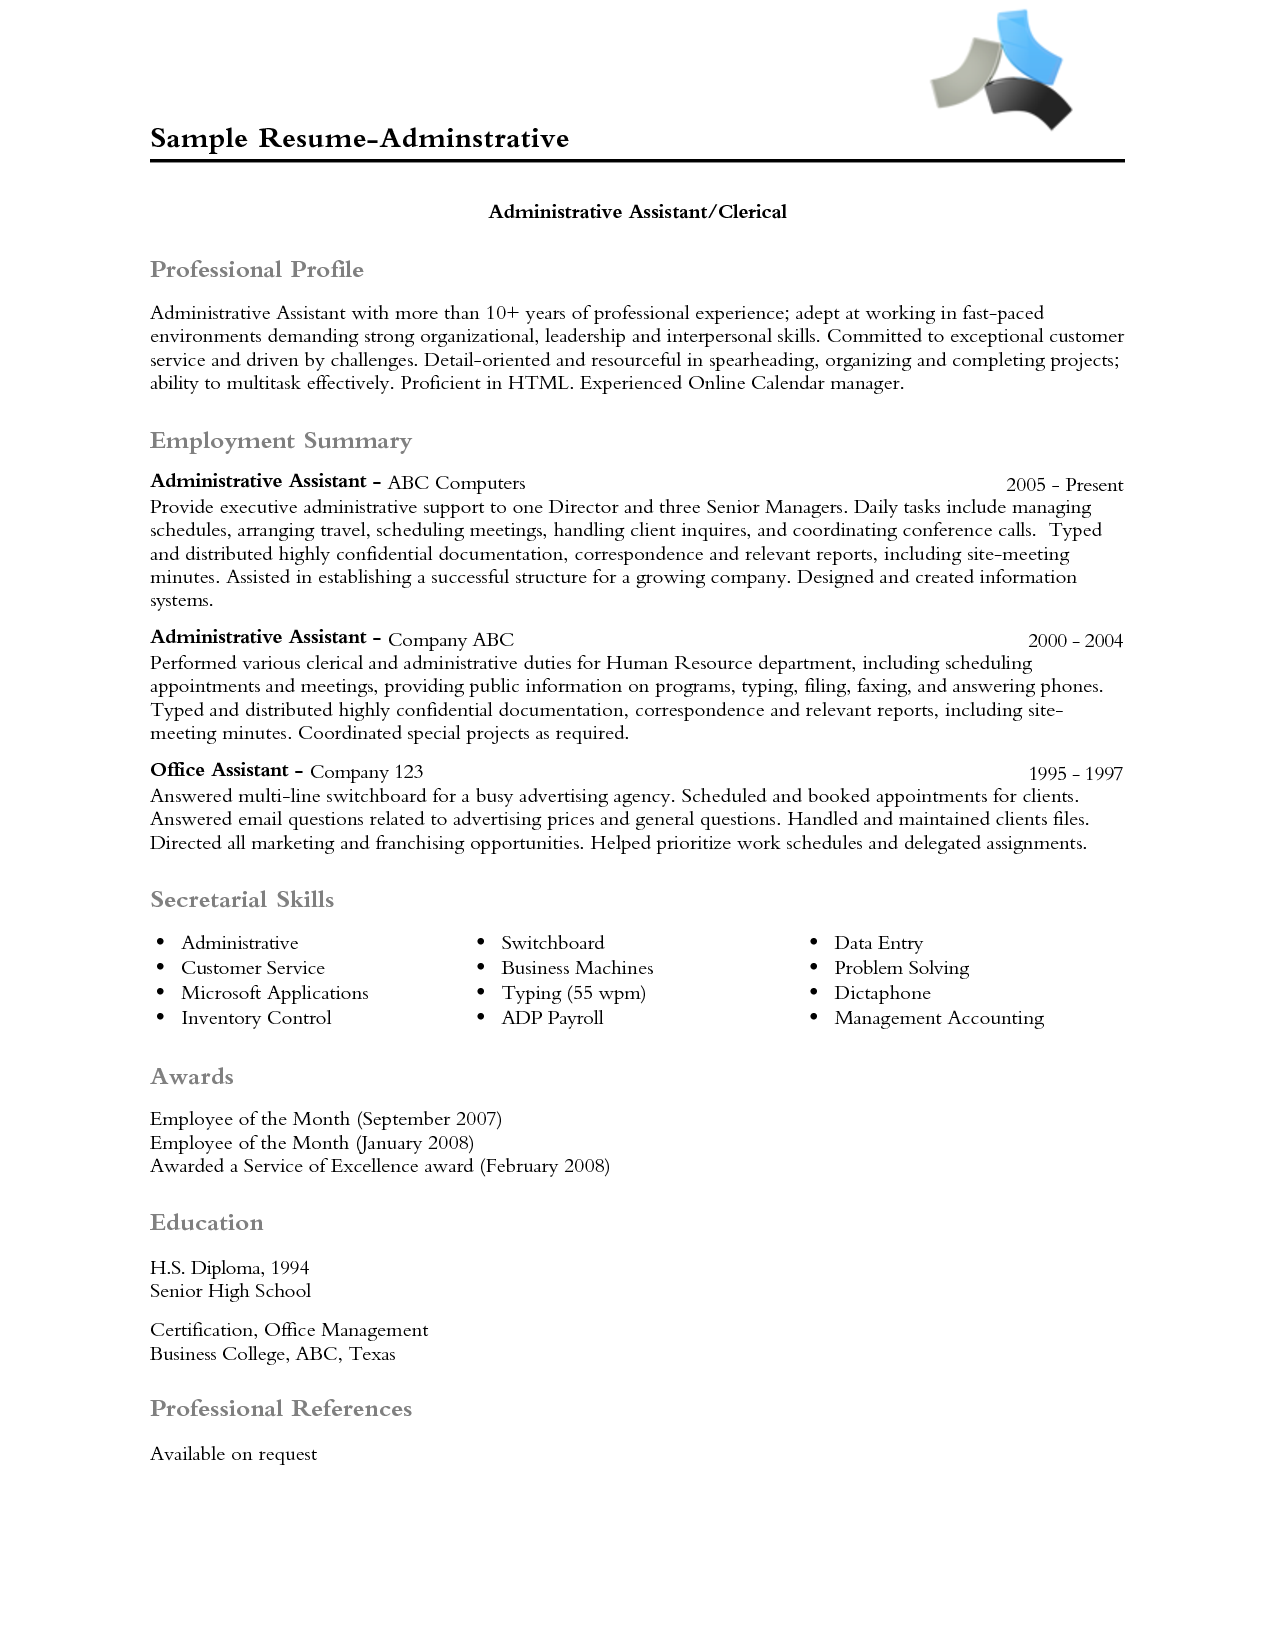 Professional Summary Resume Amazing Stockroom Manager Resume Samples  Httpwwwresumecareer Inspiration Design